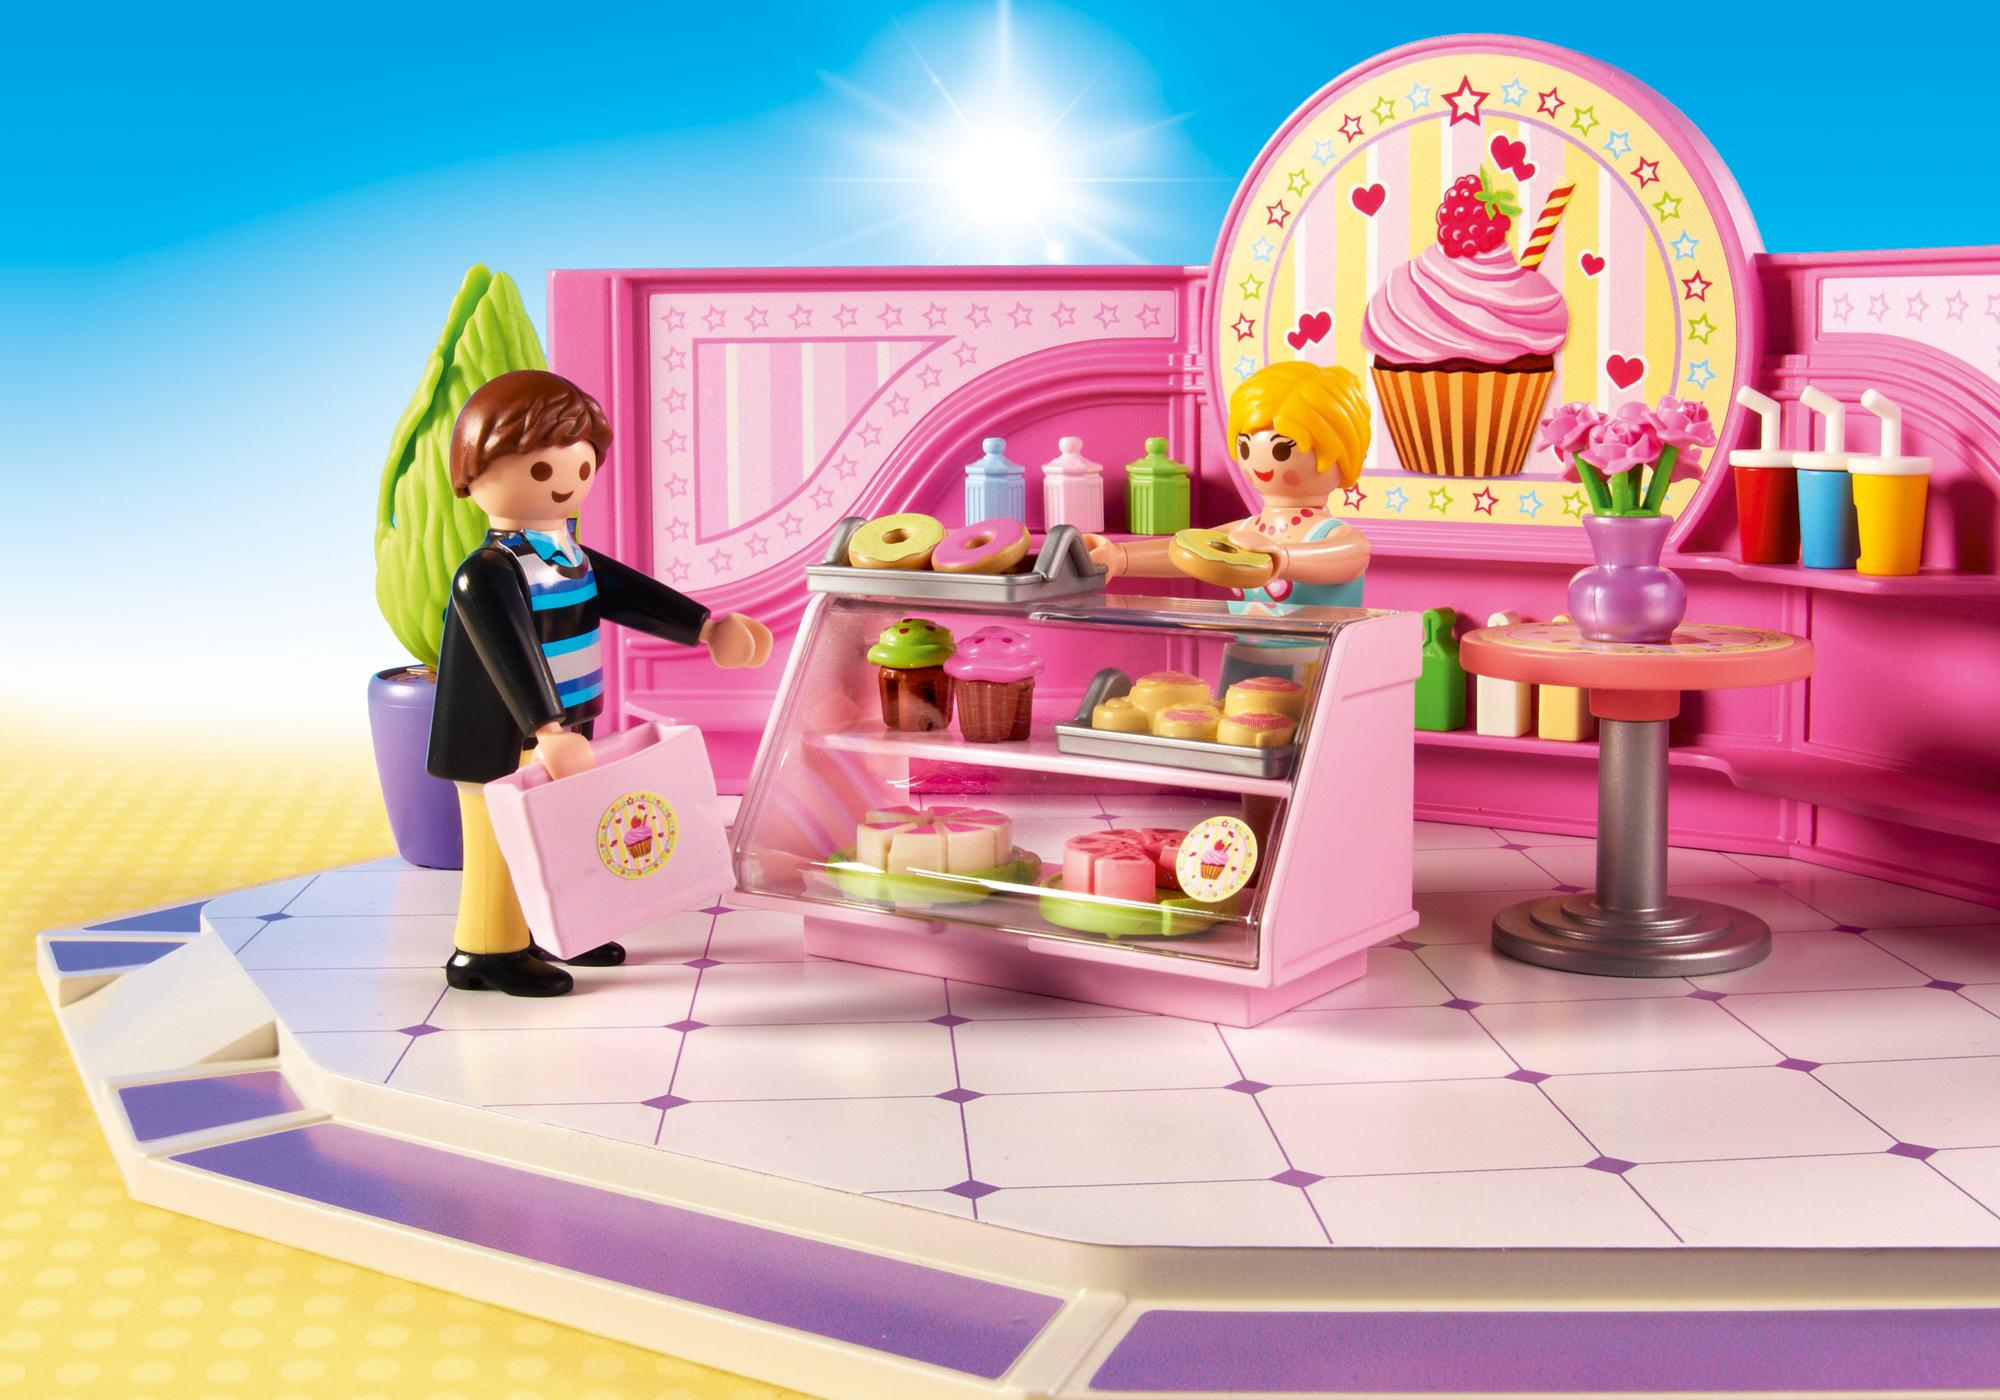 http://media.playmobil.com/i/playmobil/9080_product_extra1/Cupcake Shop